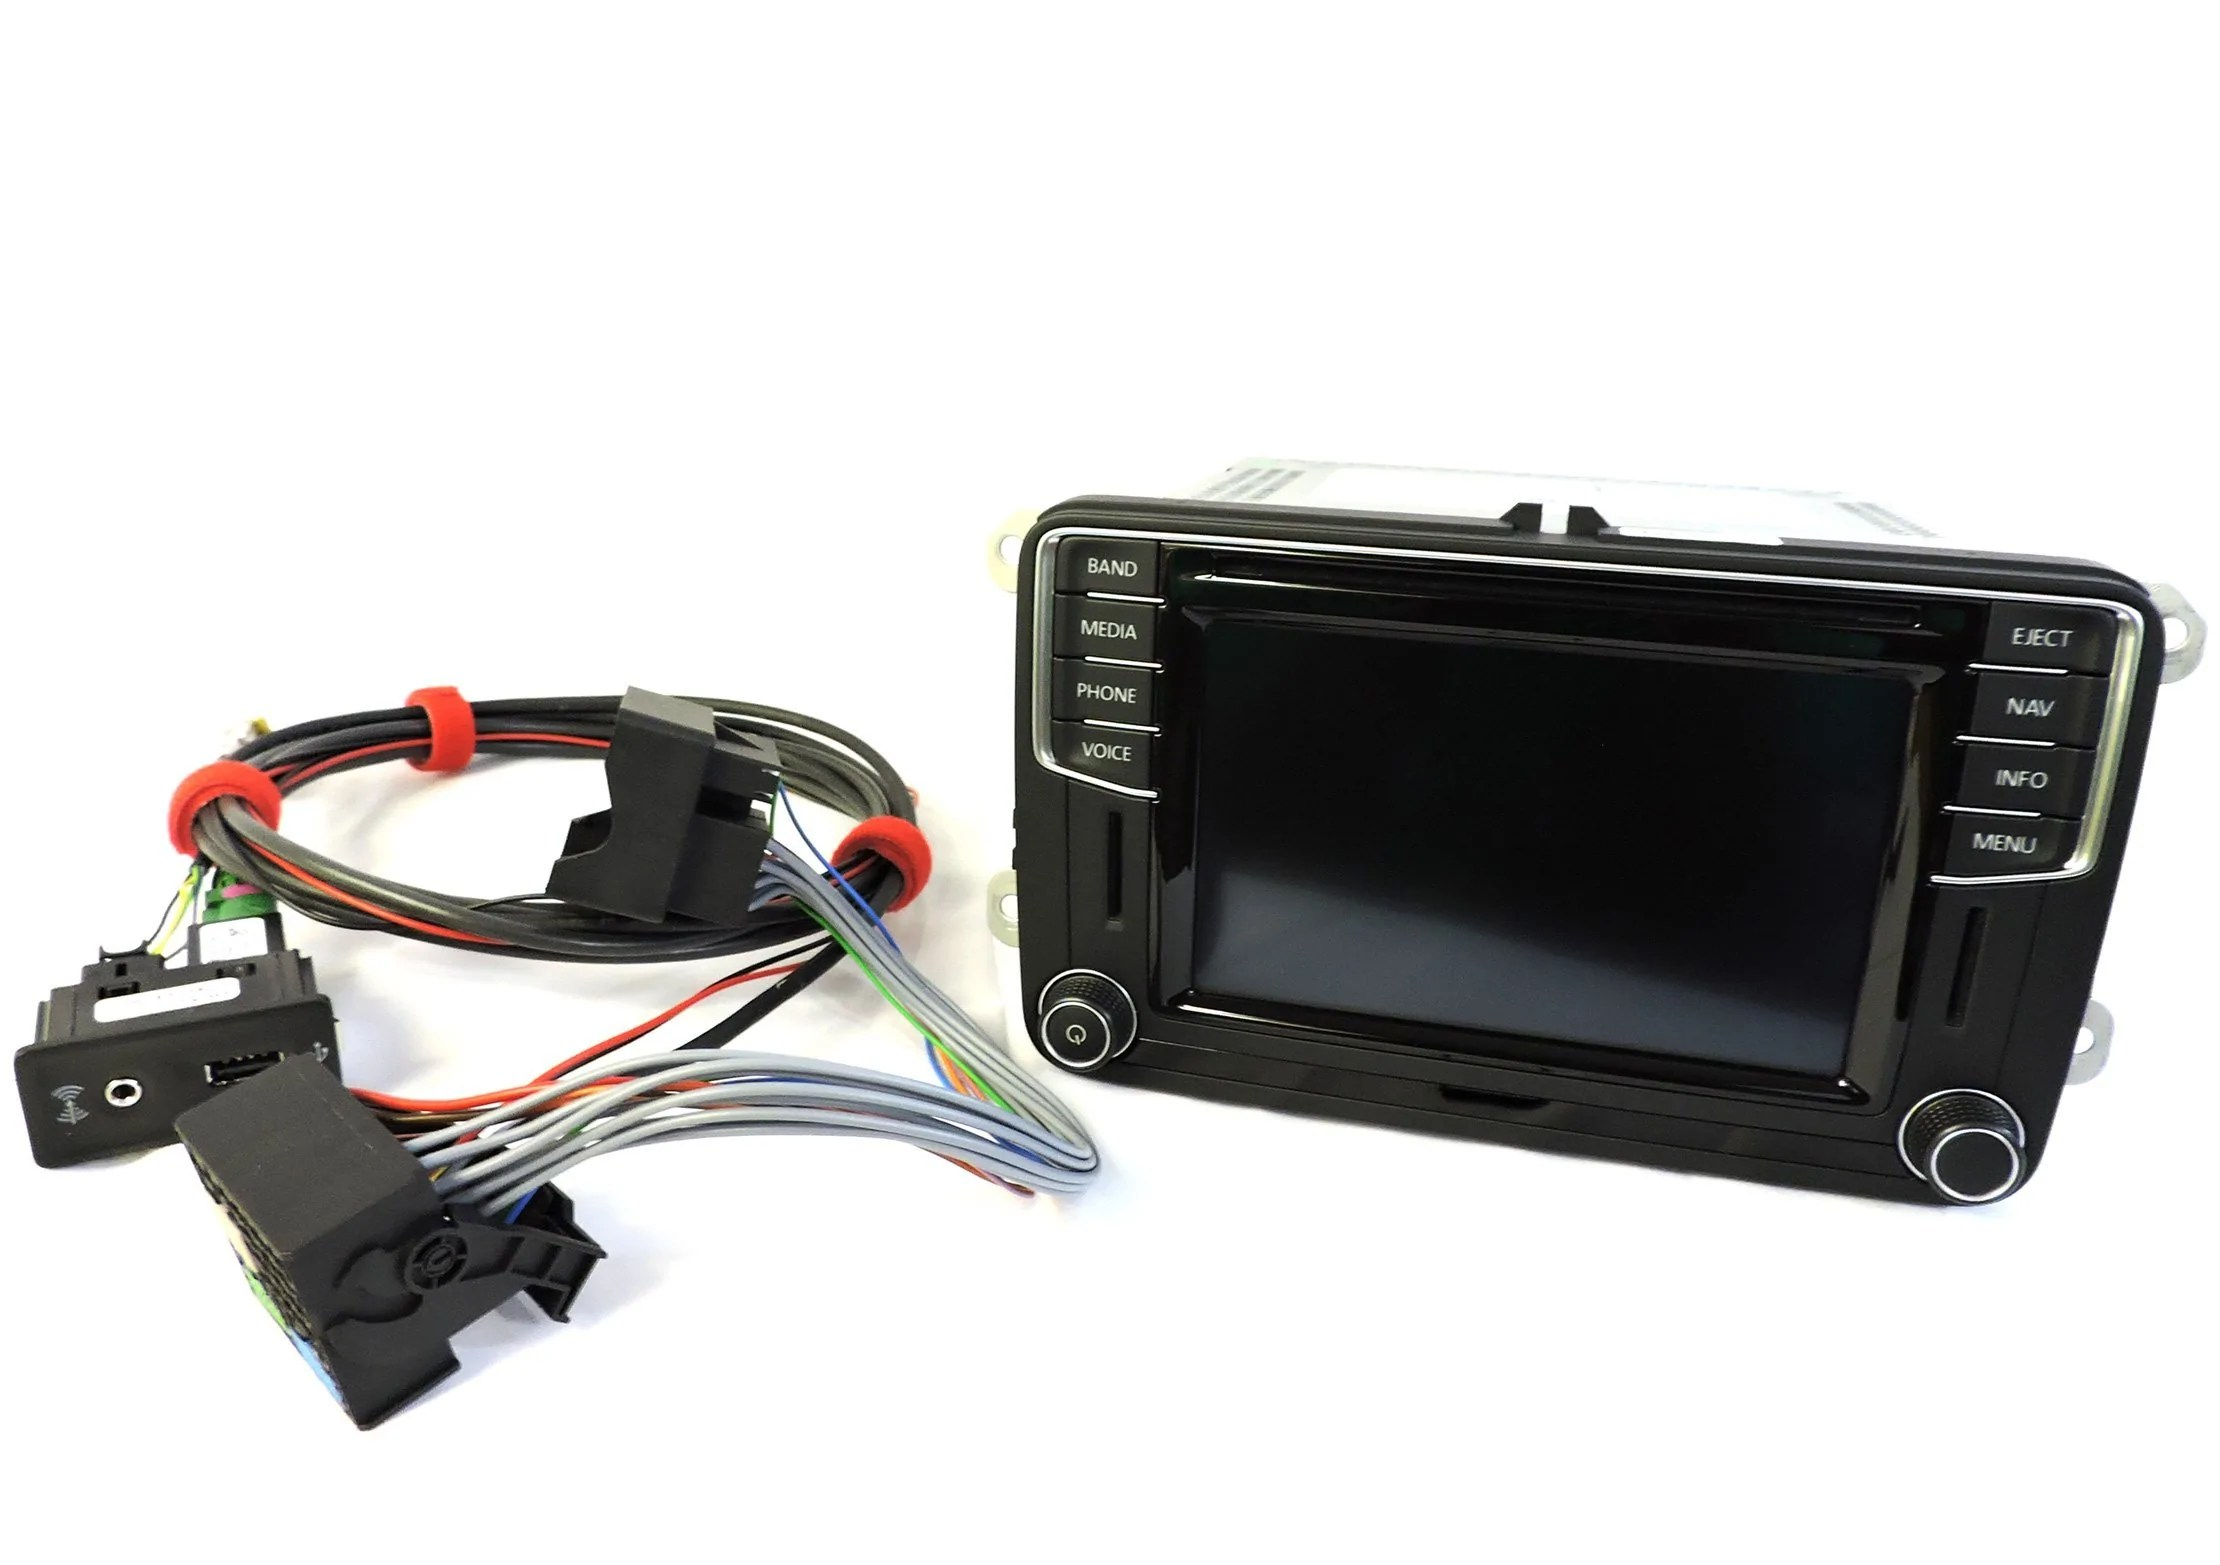 hight resolution of vw discover media plus mib2 pq retrofit kit w app connect eurozone tuning